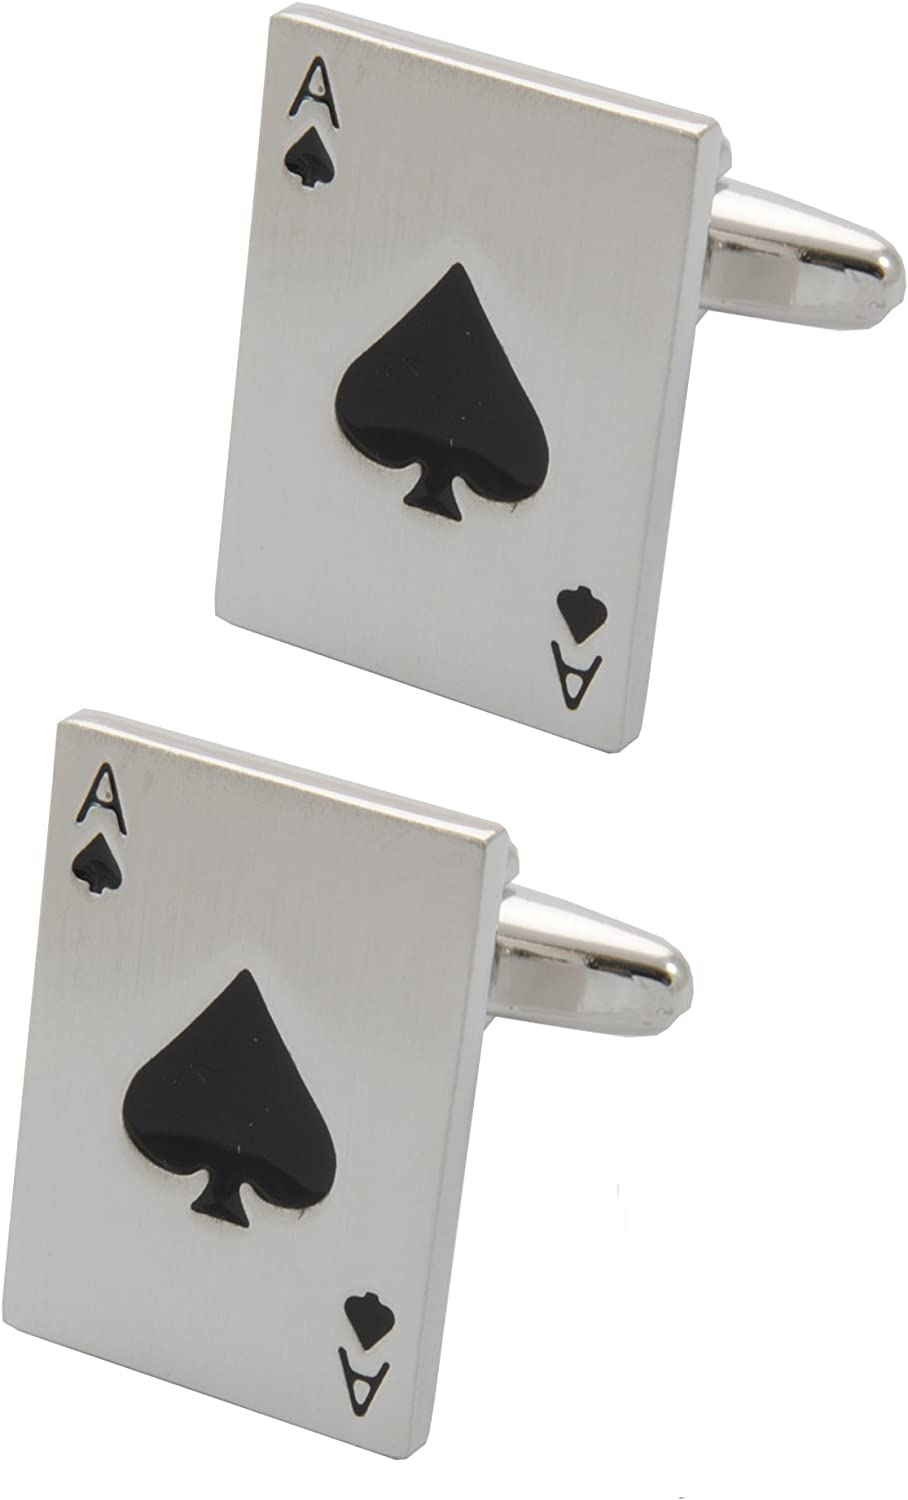 COLLAR AND CUFFS LONDON - Premium Cufflinks with Gift Box - Ace of Spades - Pack of Cards - Poker Magic Magician Game - Silver Color